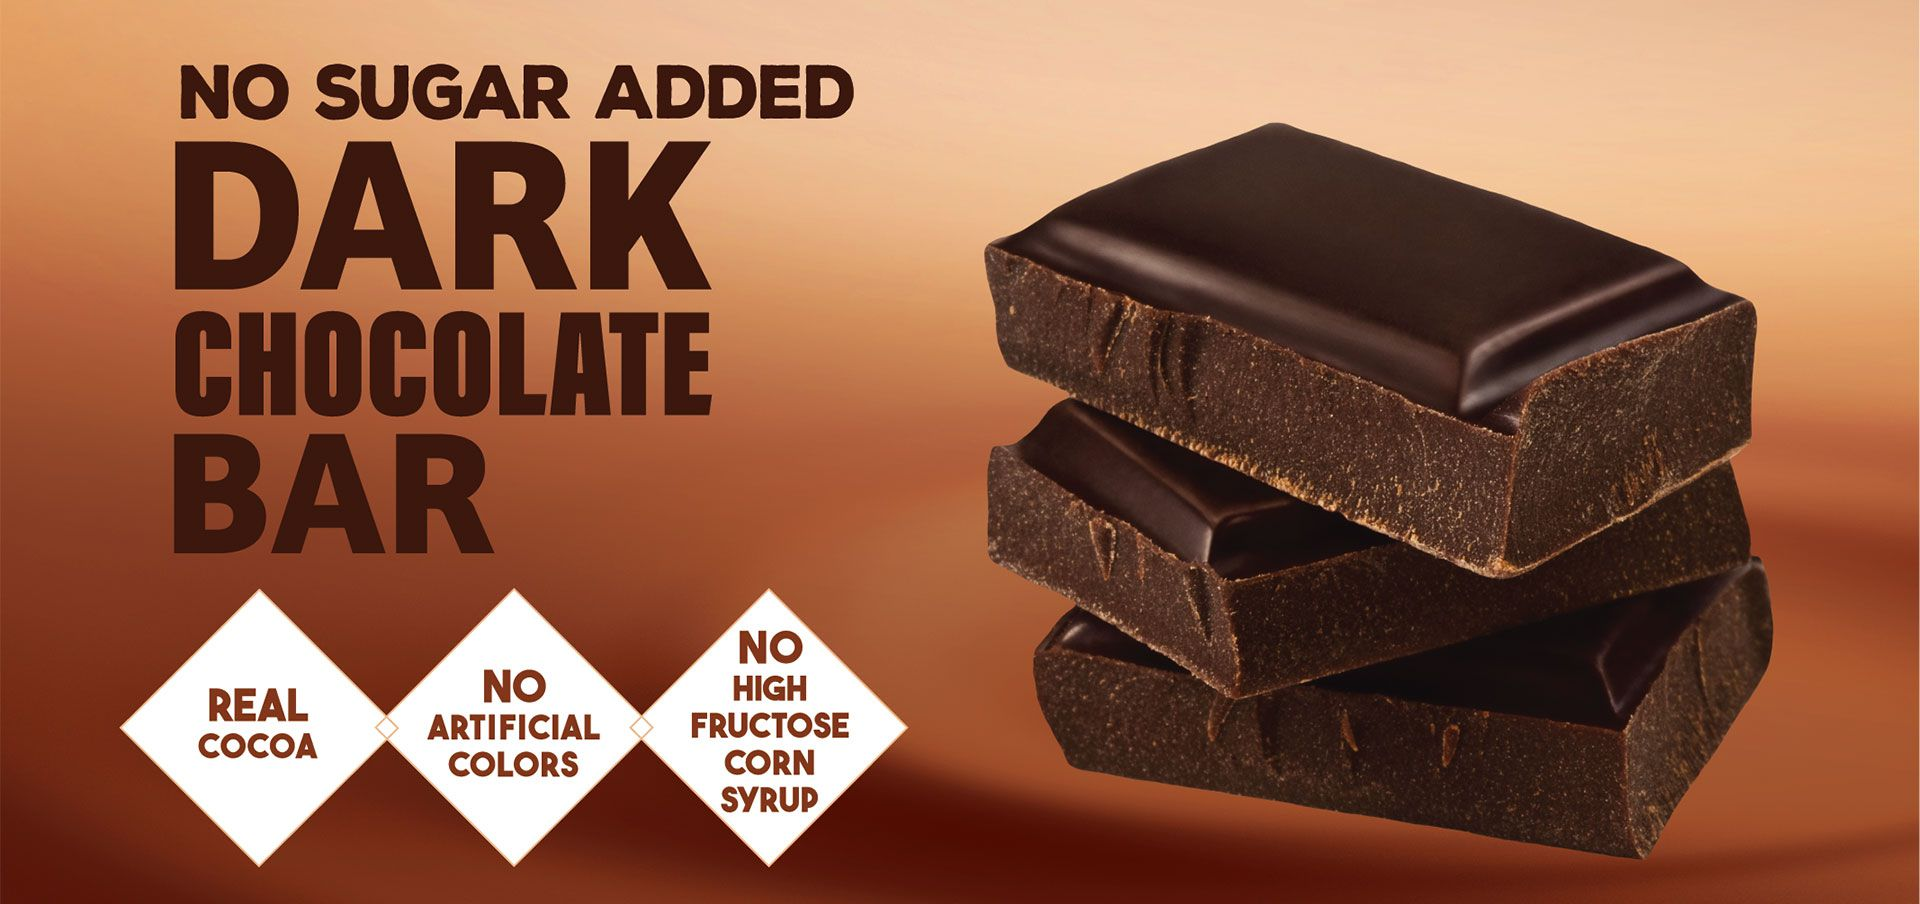 nsa dark chocolate bar label image